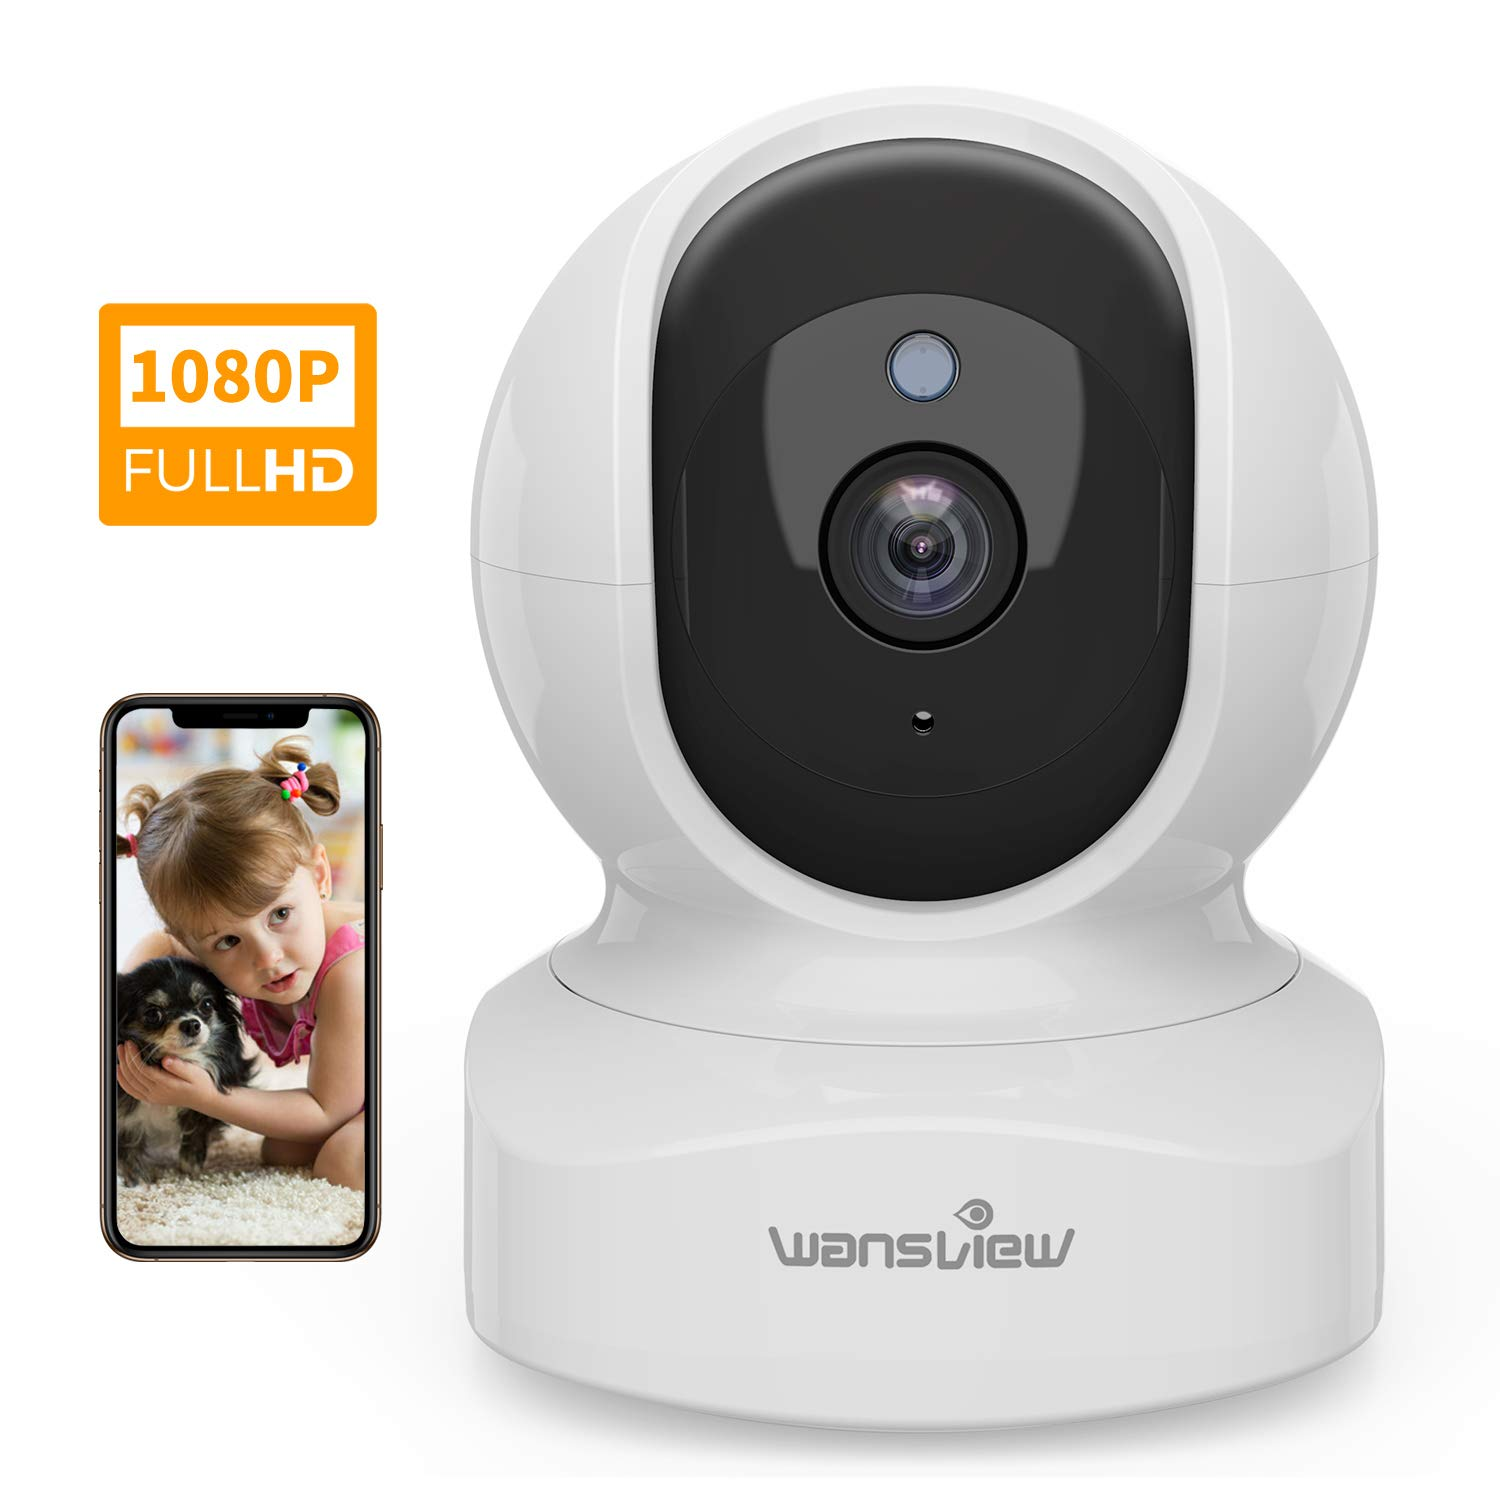 Home Security Camera, Baby Camera,1080P HD Wansview Wireless WiFi Camera for Pet/Nanny, Free Motion Alerts, 2 Way Audio, Night Vision, Compatible with Alexa Echo Show, with TF Card Slot and Cloud by Wansview